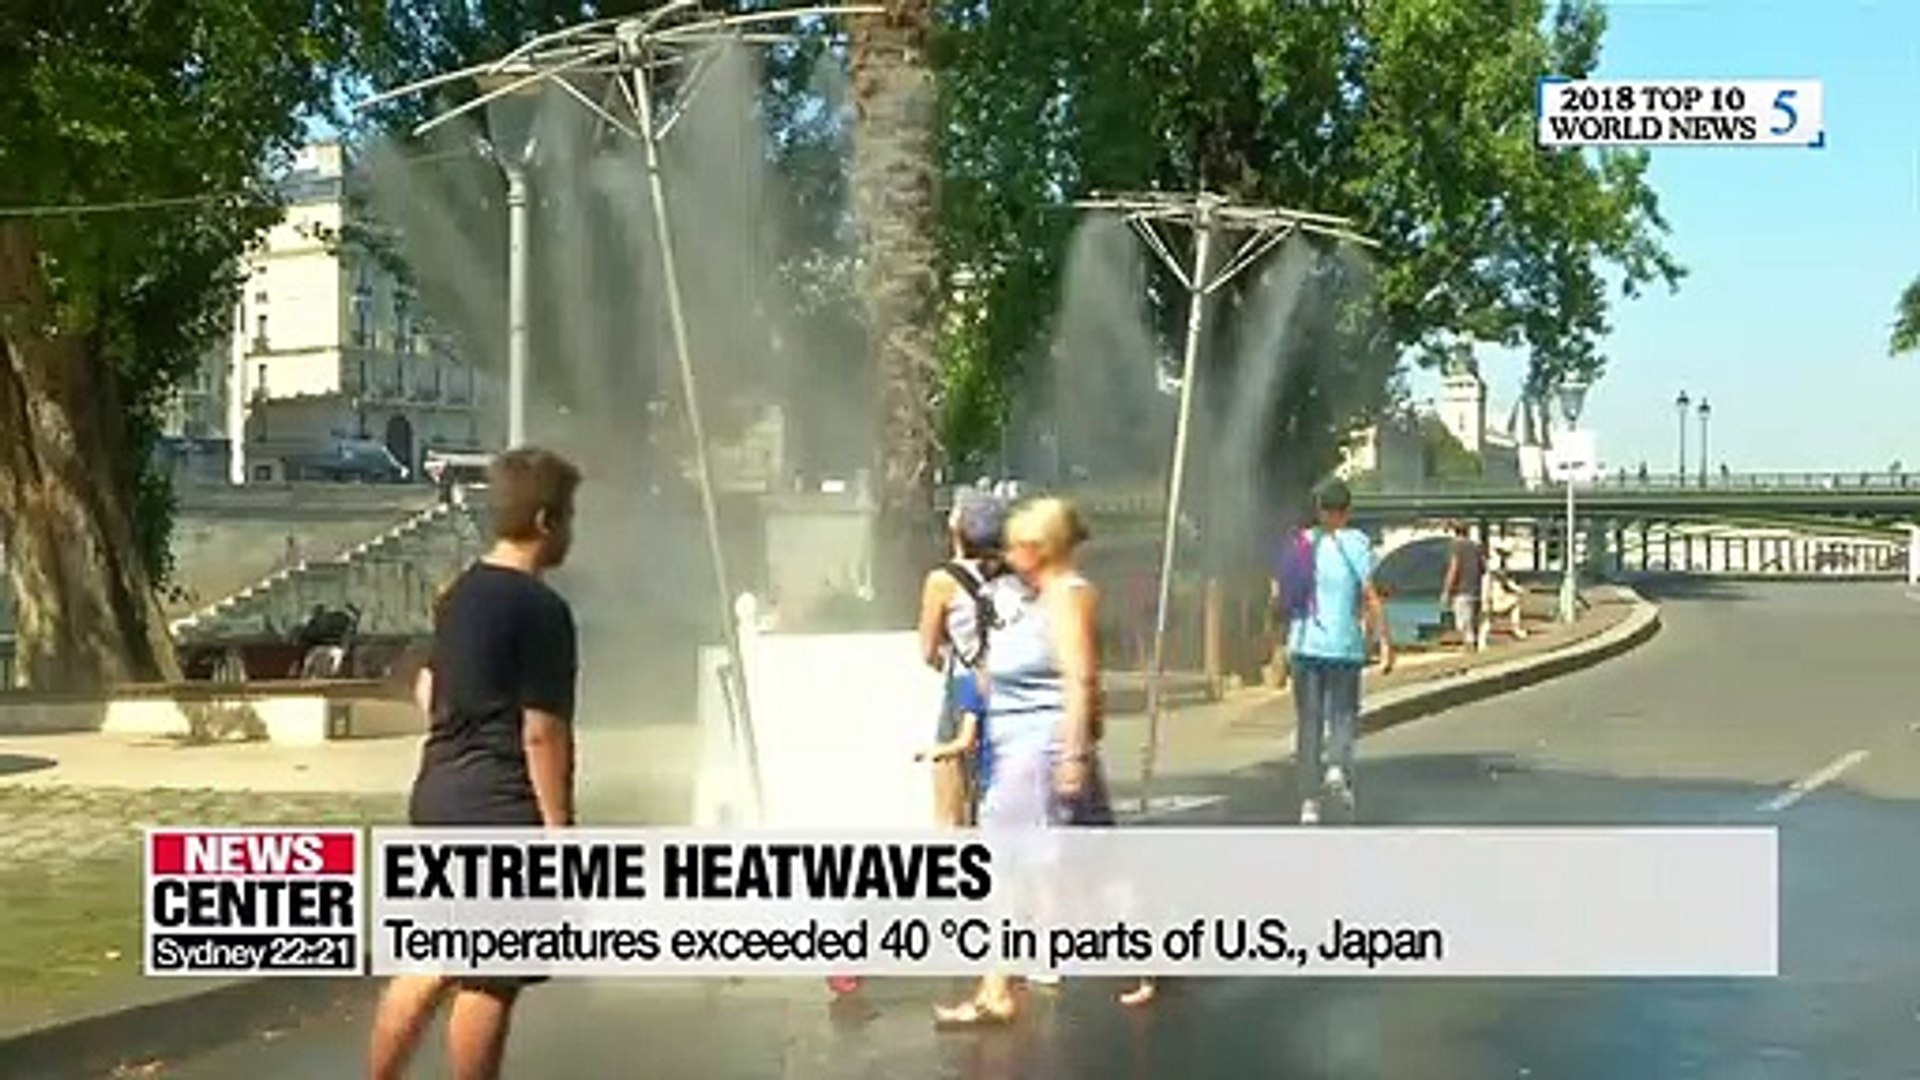 Extreme weather and climate change around the world